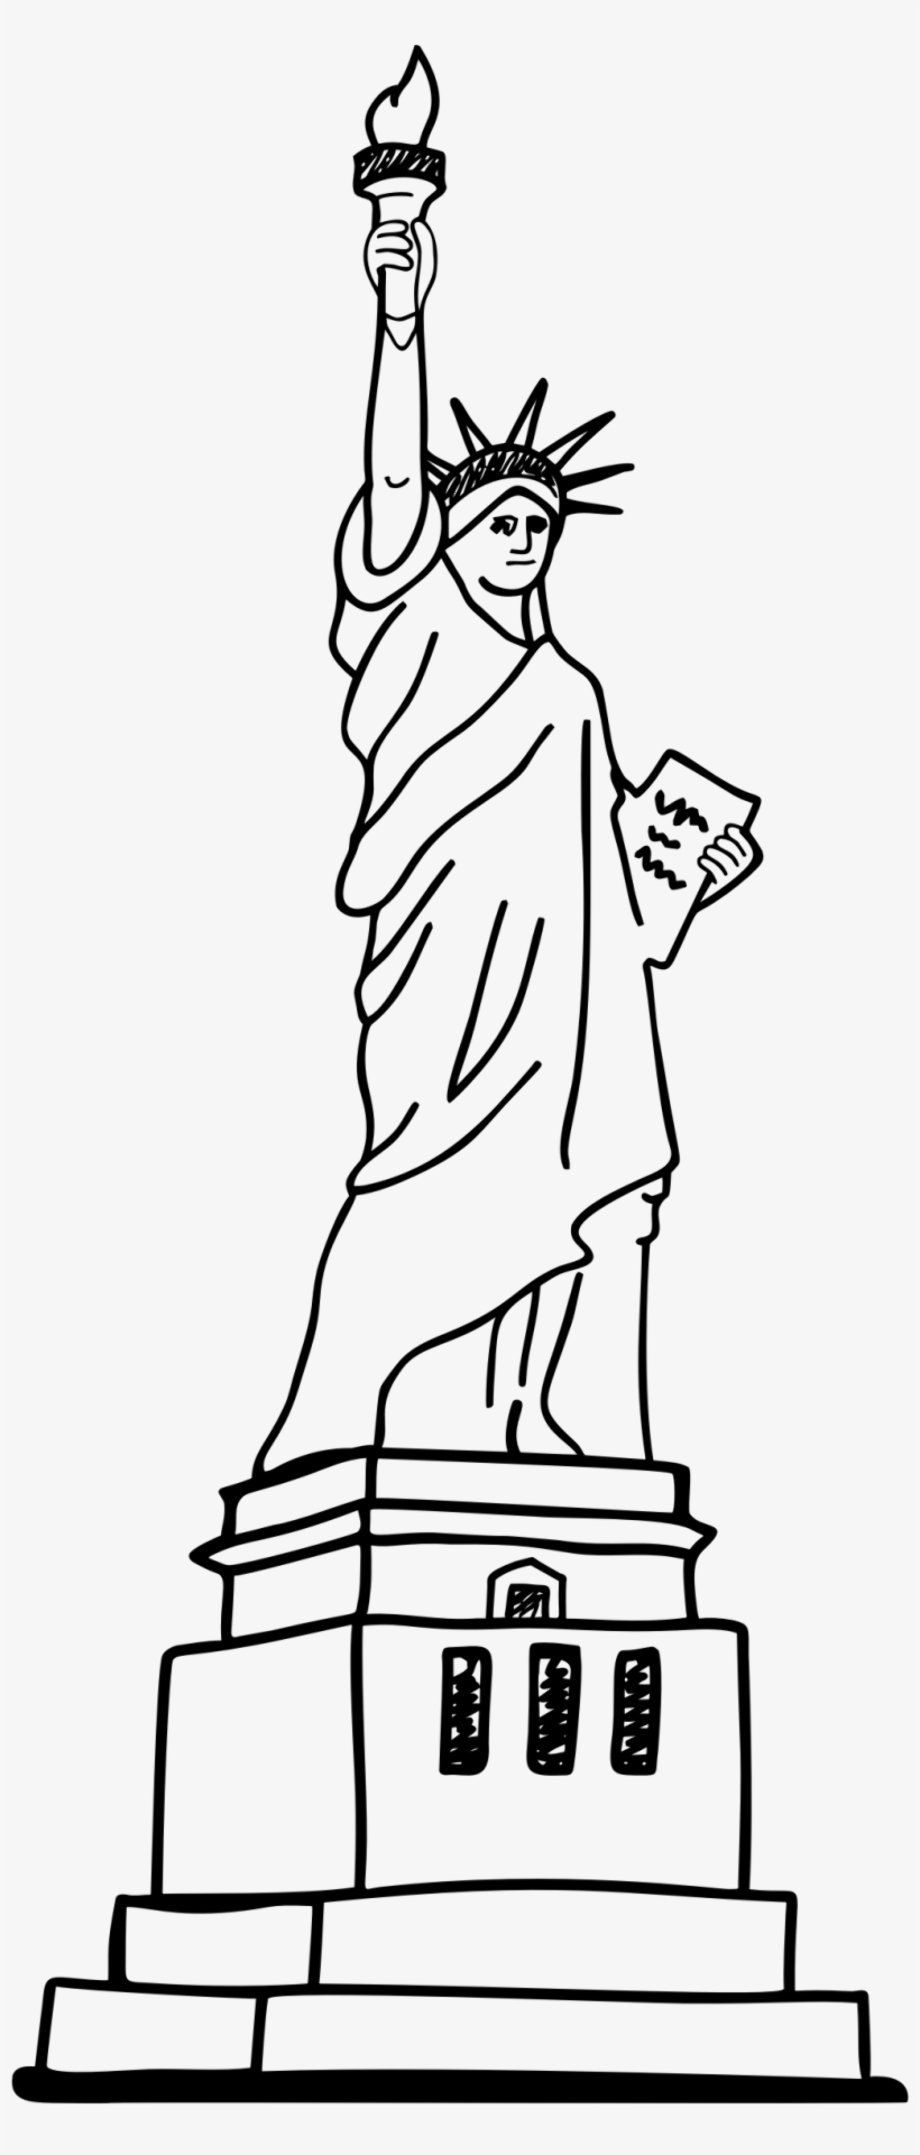 how to draw statue of liberty easy download high quality statue of liberty clipart easy draw how statue liberty to easy of